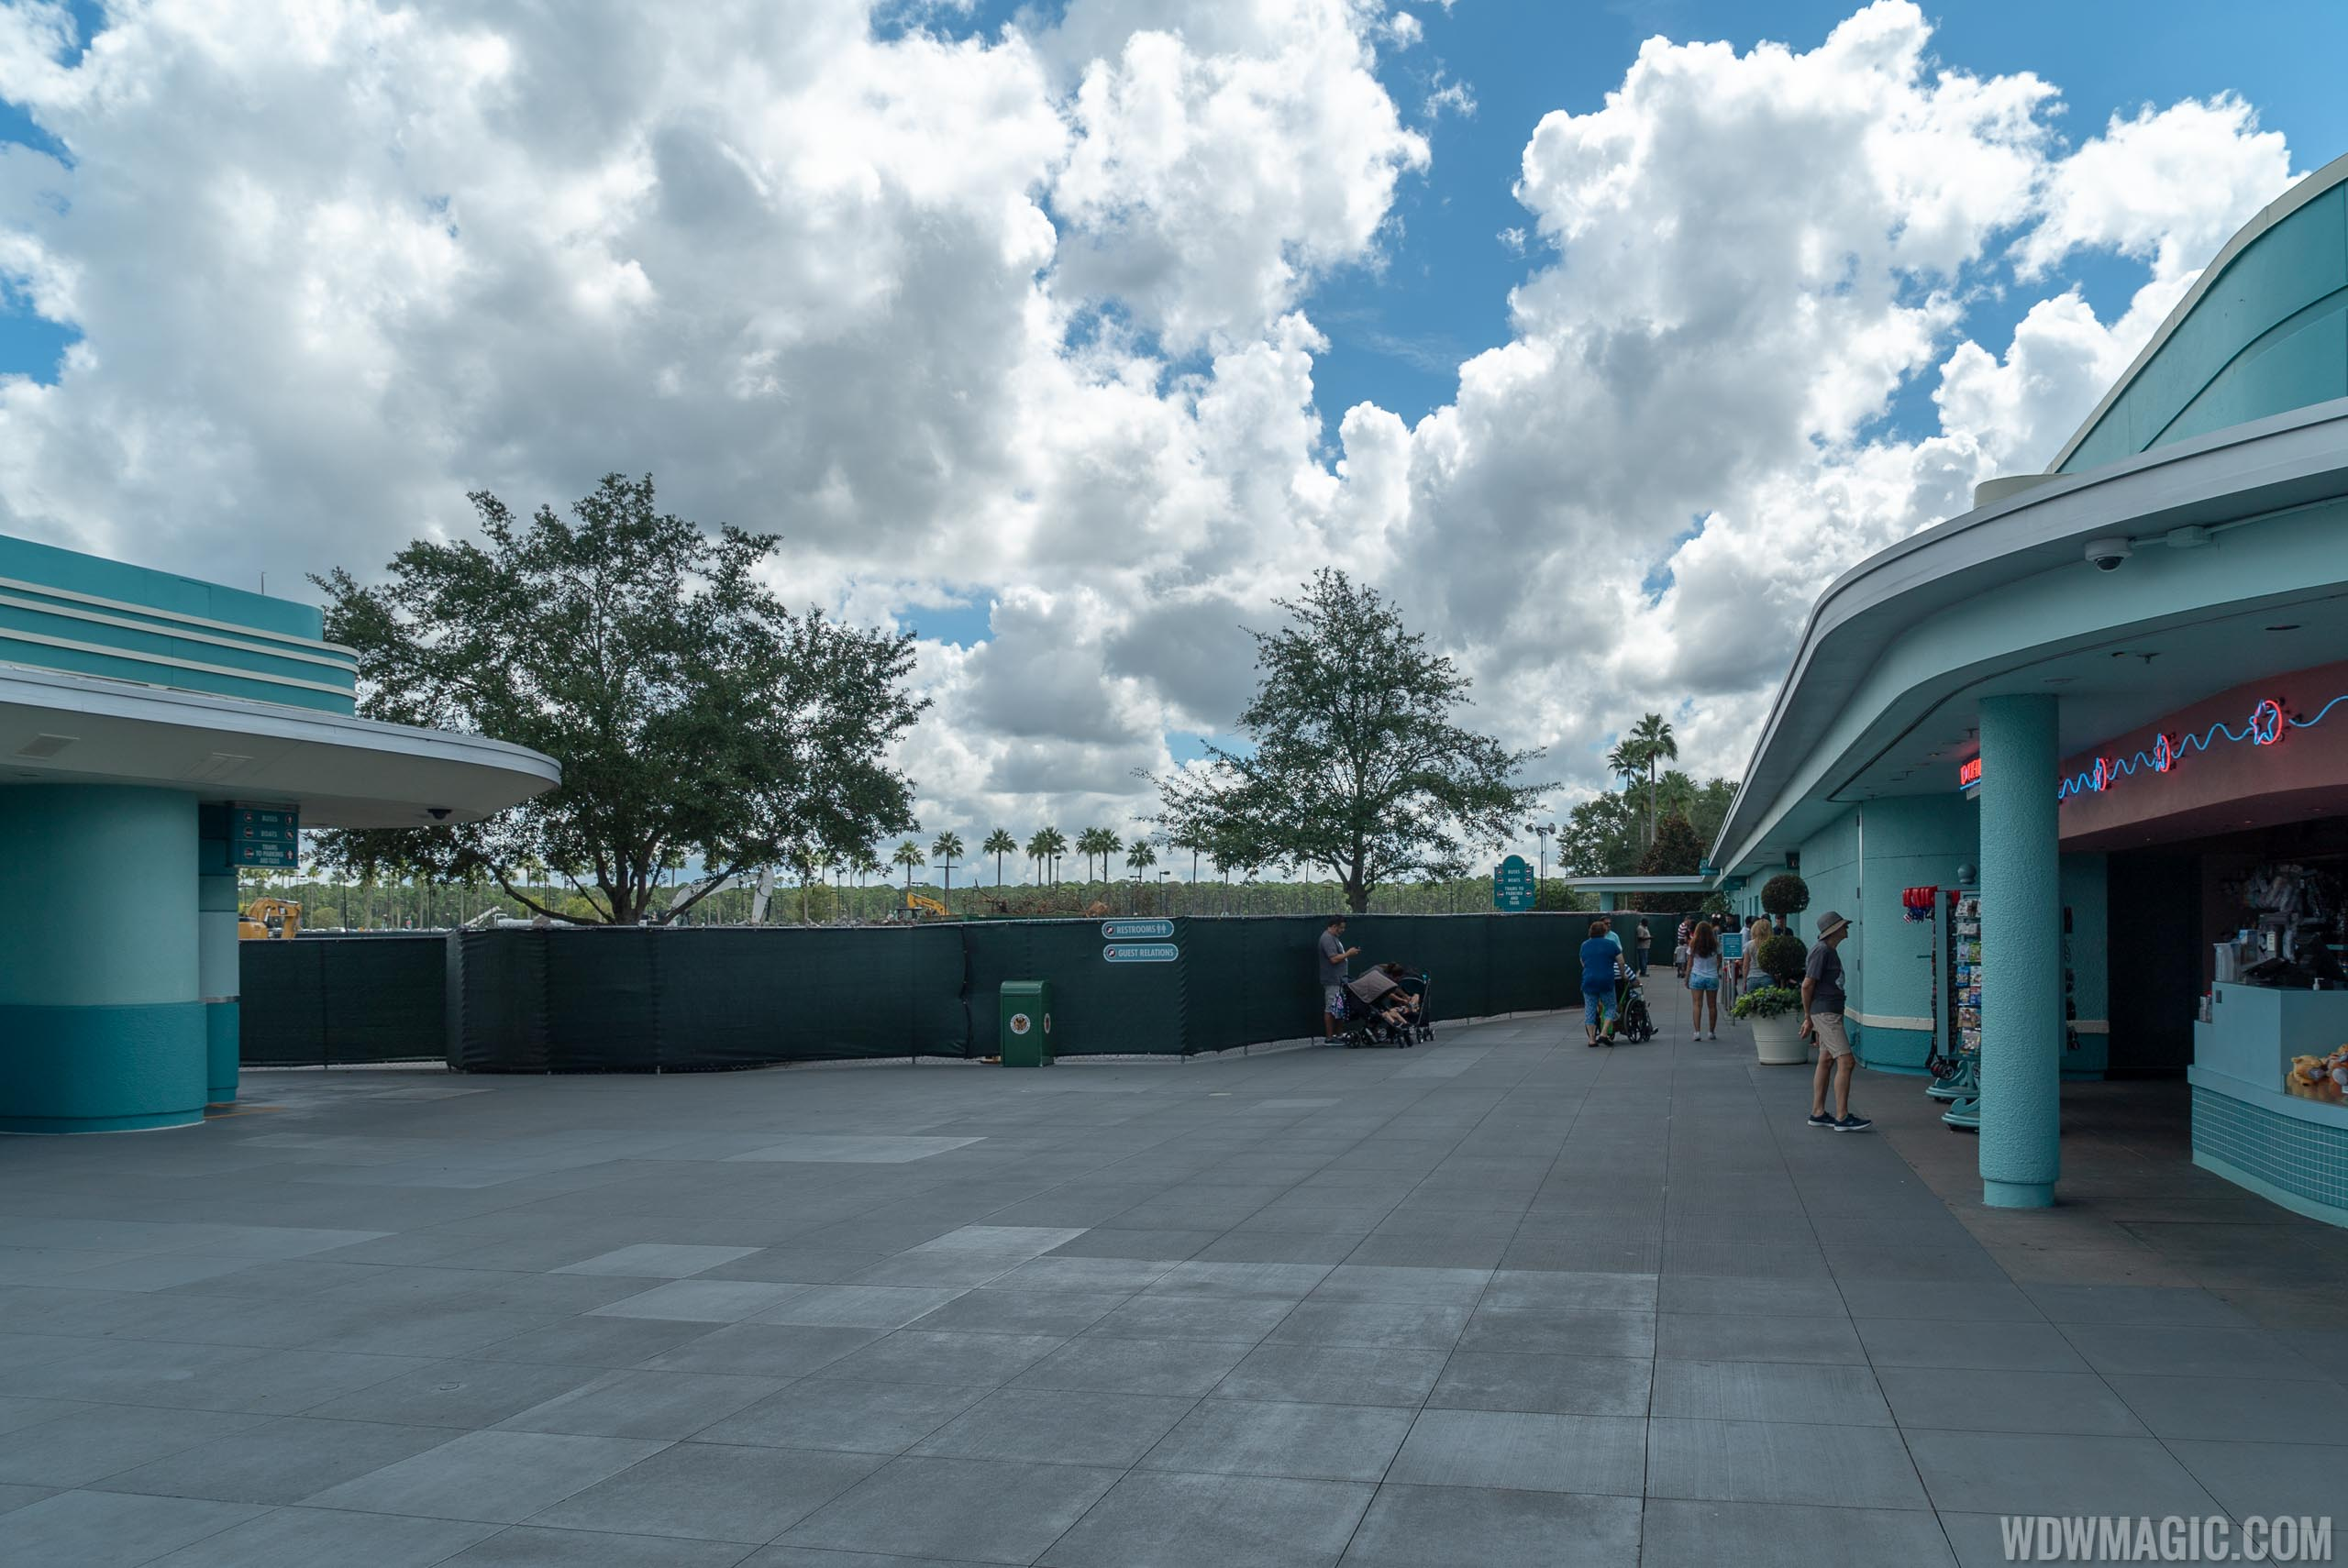 Disney's Hollywood Studios former bus stop demolition and main entrance work